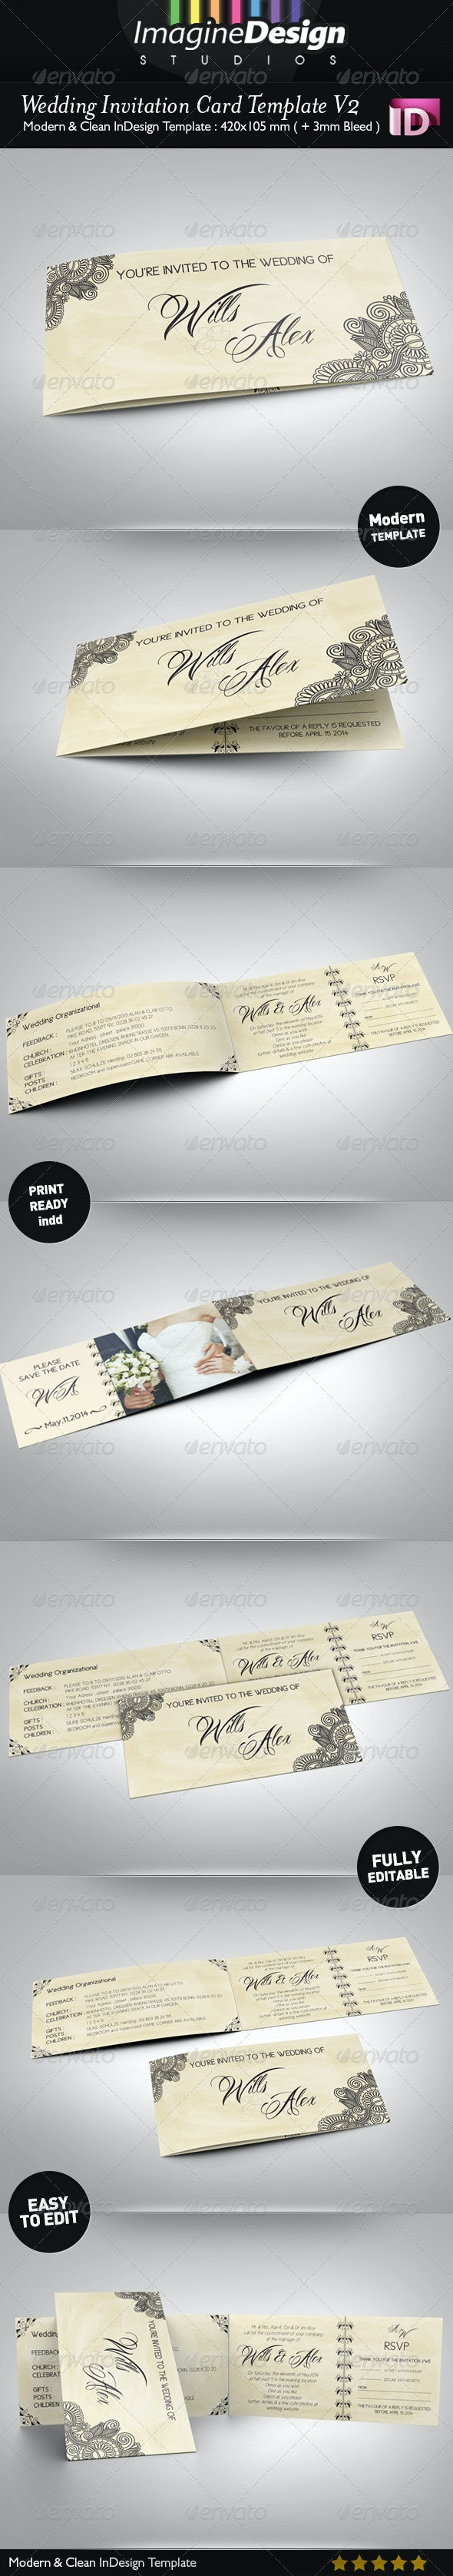 Wedding Invitation Card V2 - Weddings Cards & Invites